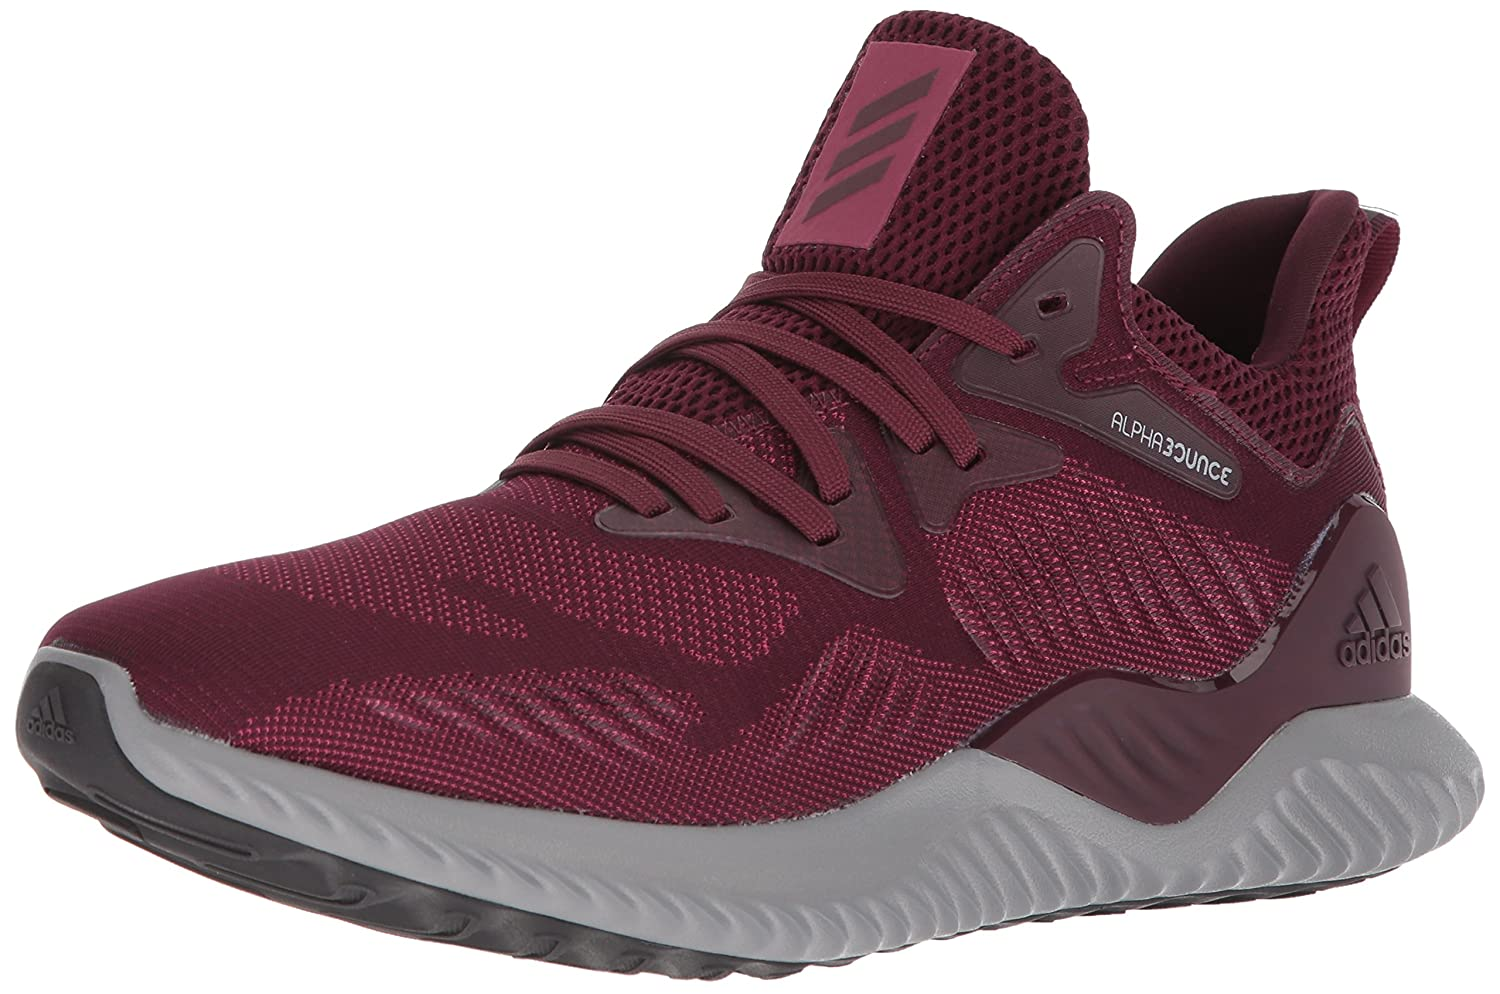 adidas Alphabounce 2 M Running Shoe B072LN1KW5 14 M US|Maroon/Maroon/Mystery Ruby